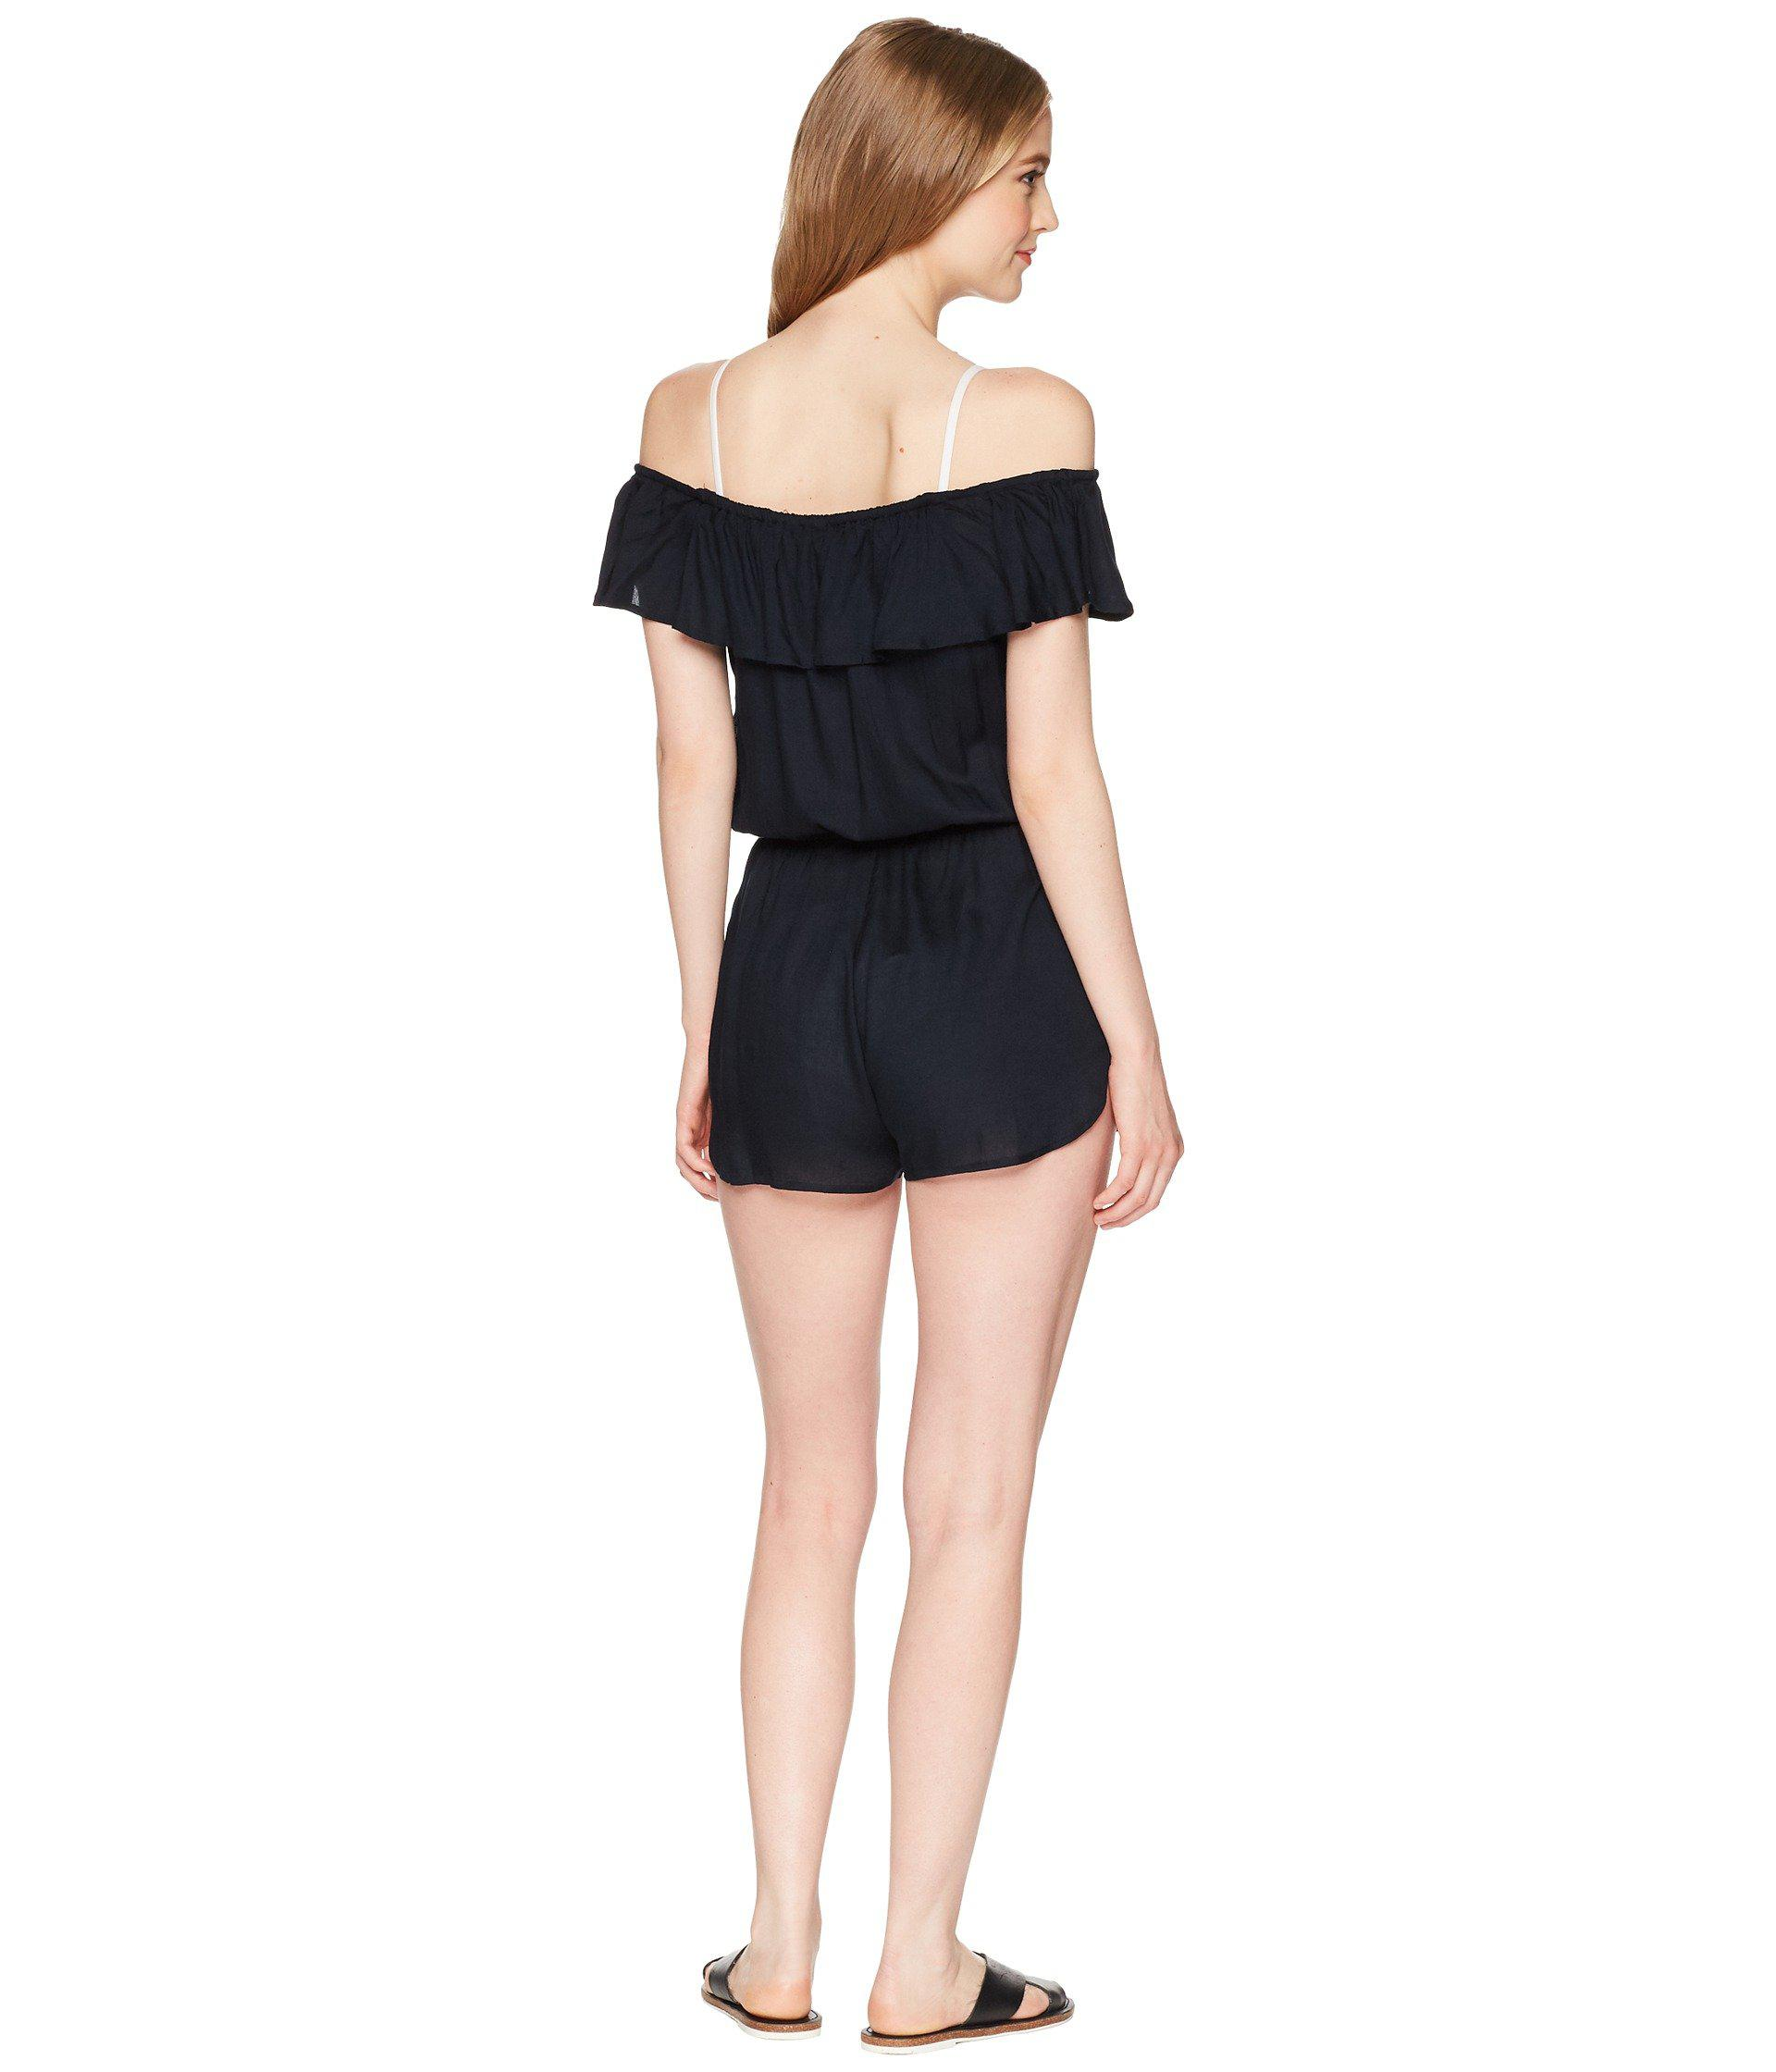 4cb513231869 Lyst - Roxy Western Holiday Romper Cover-up in Black - Save 21%